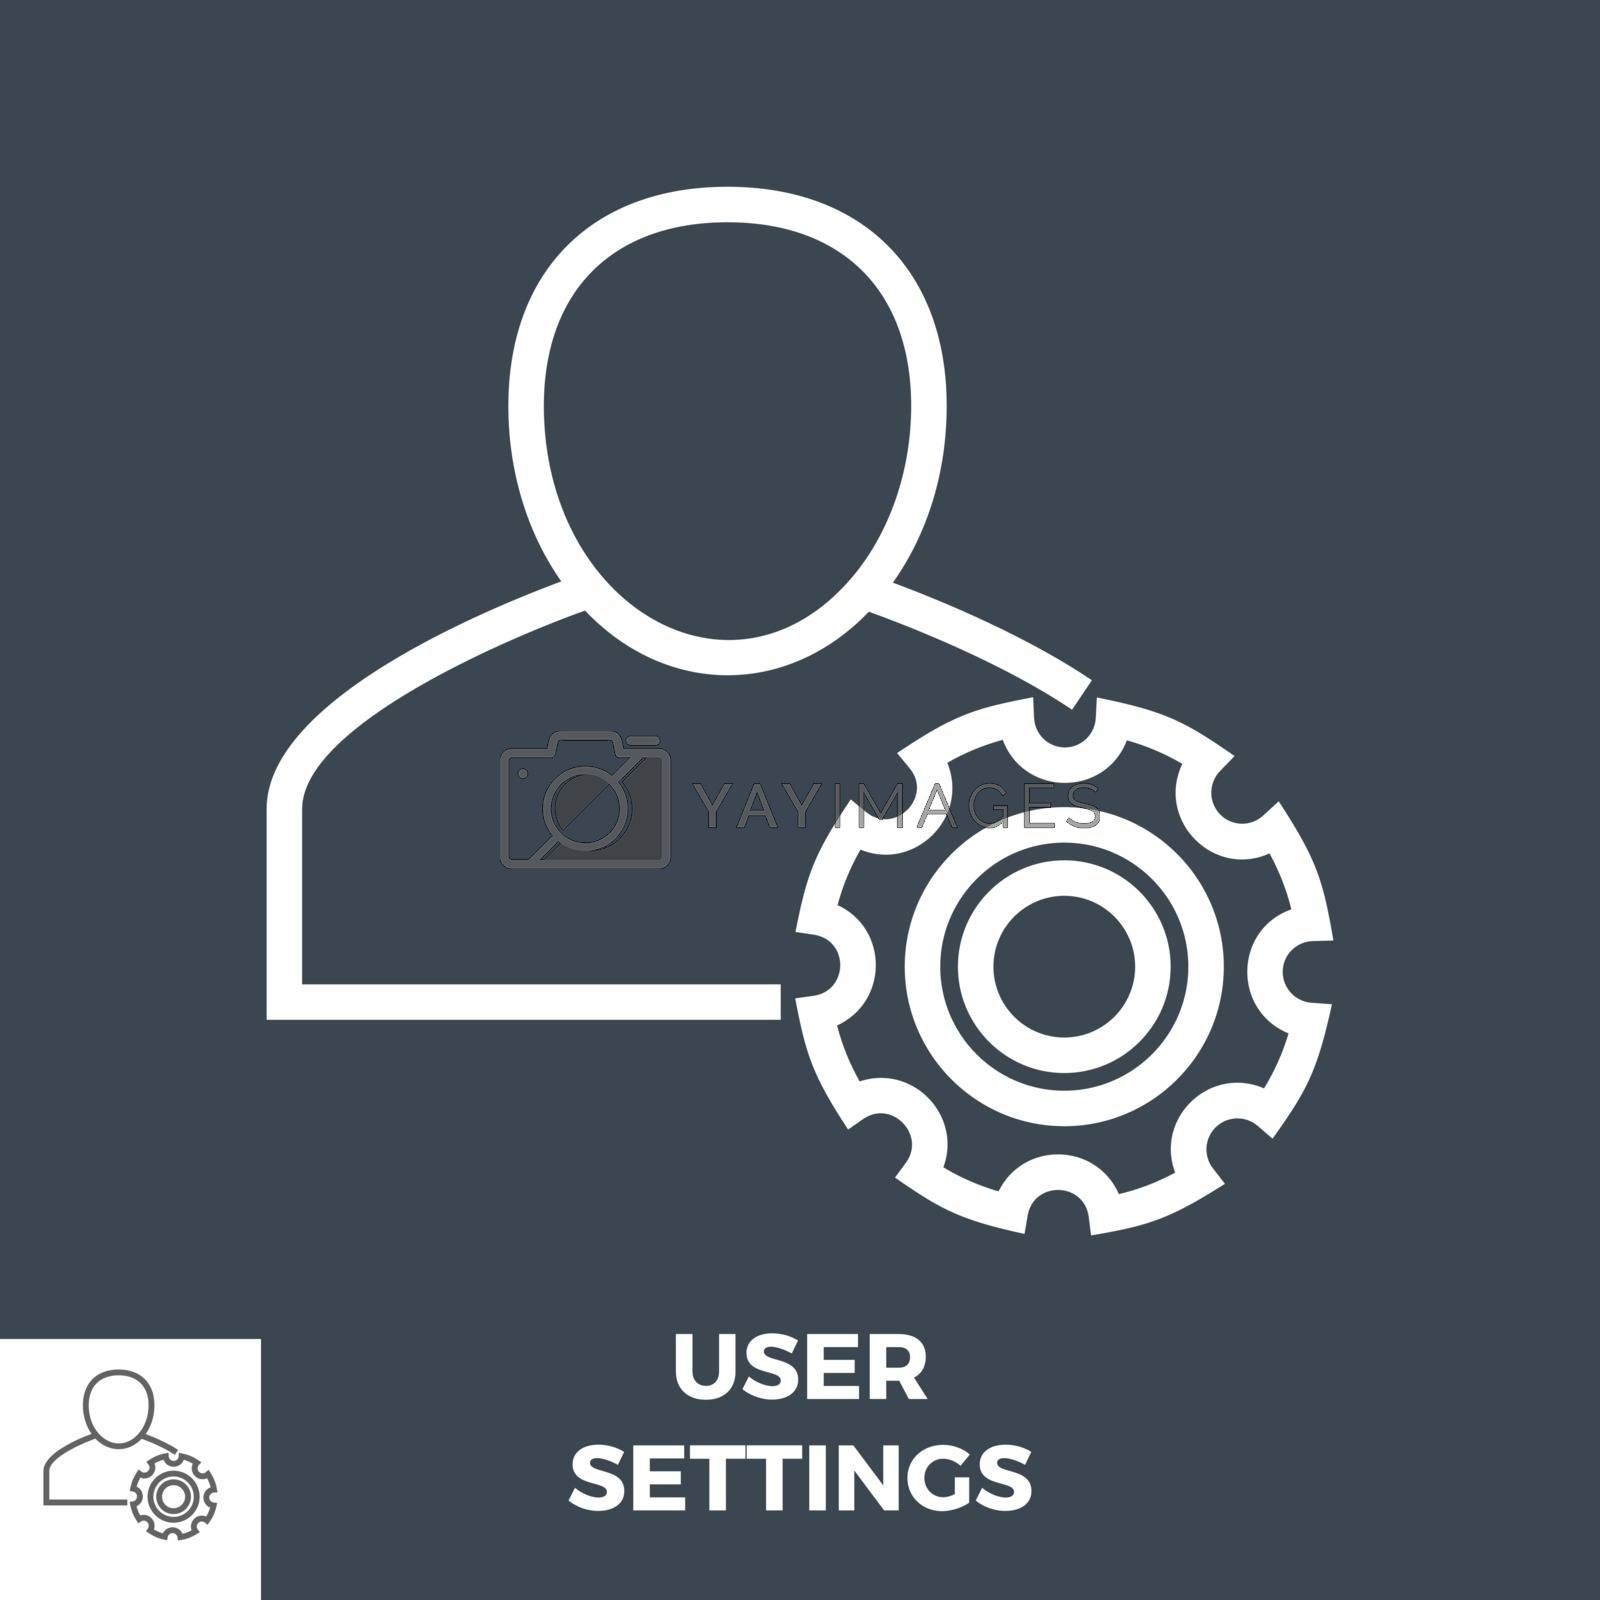 User Settings Line Icon by smoki